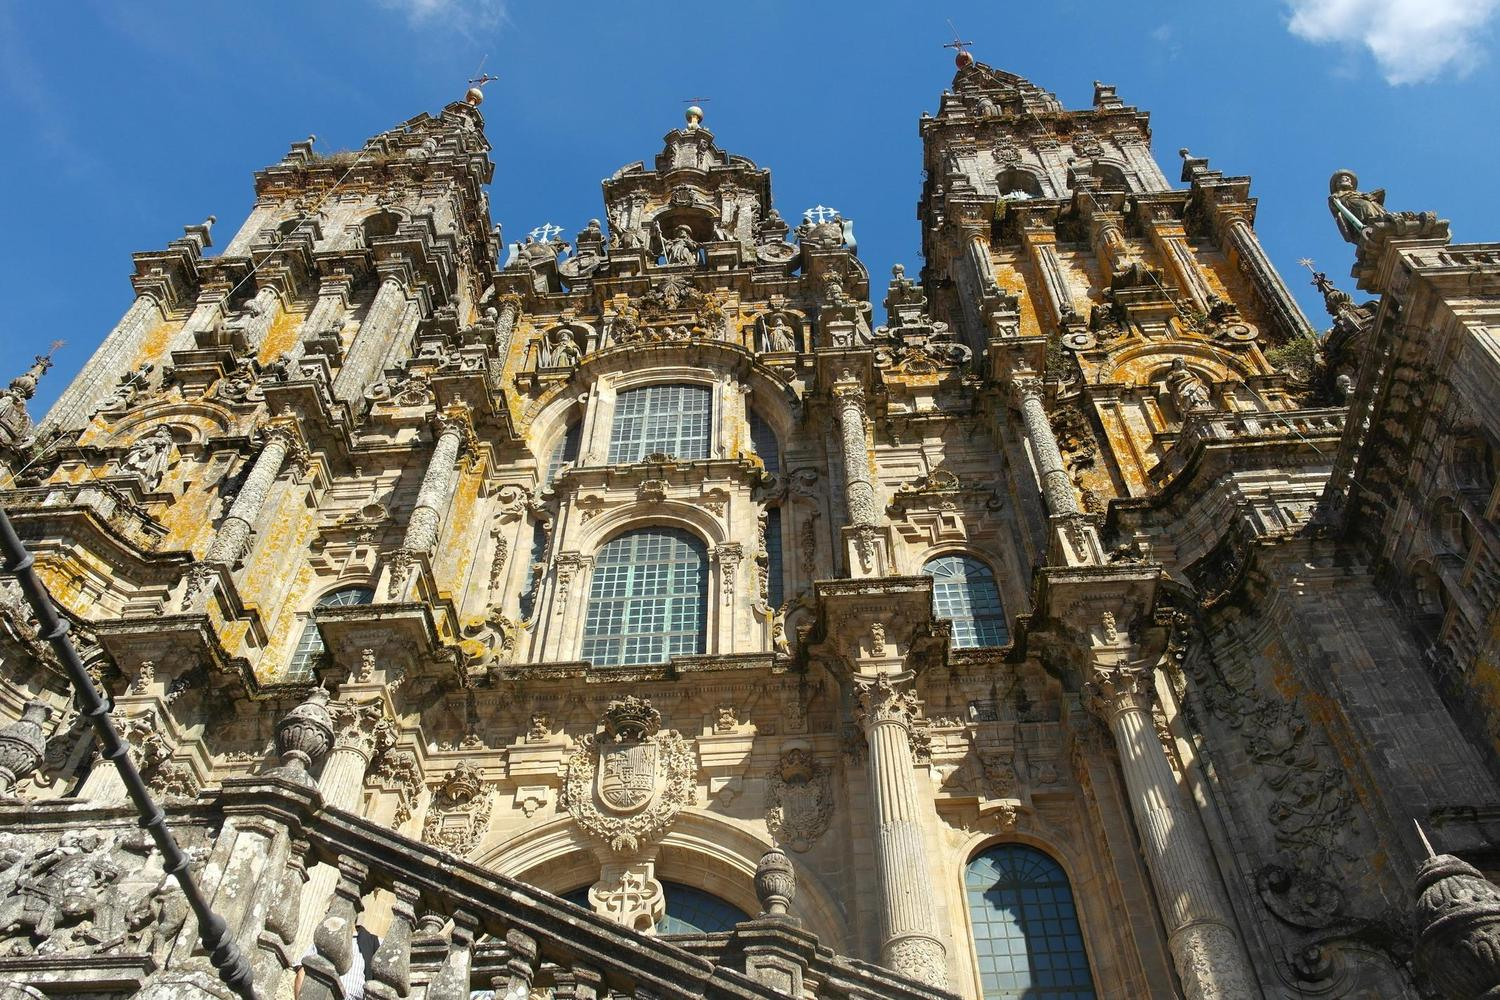 The facade of the dramatic cathedral of Santiago